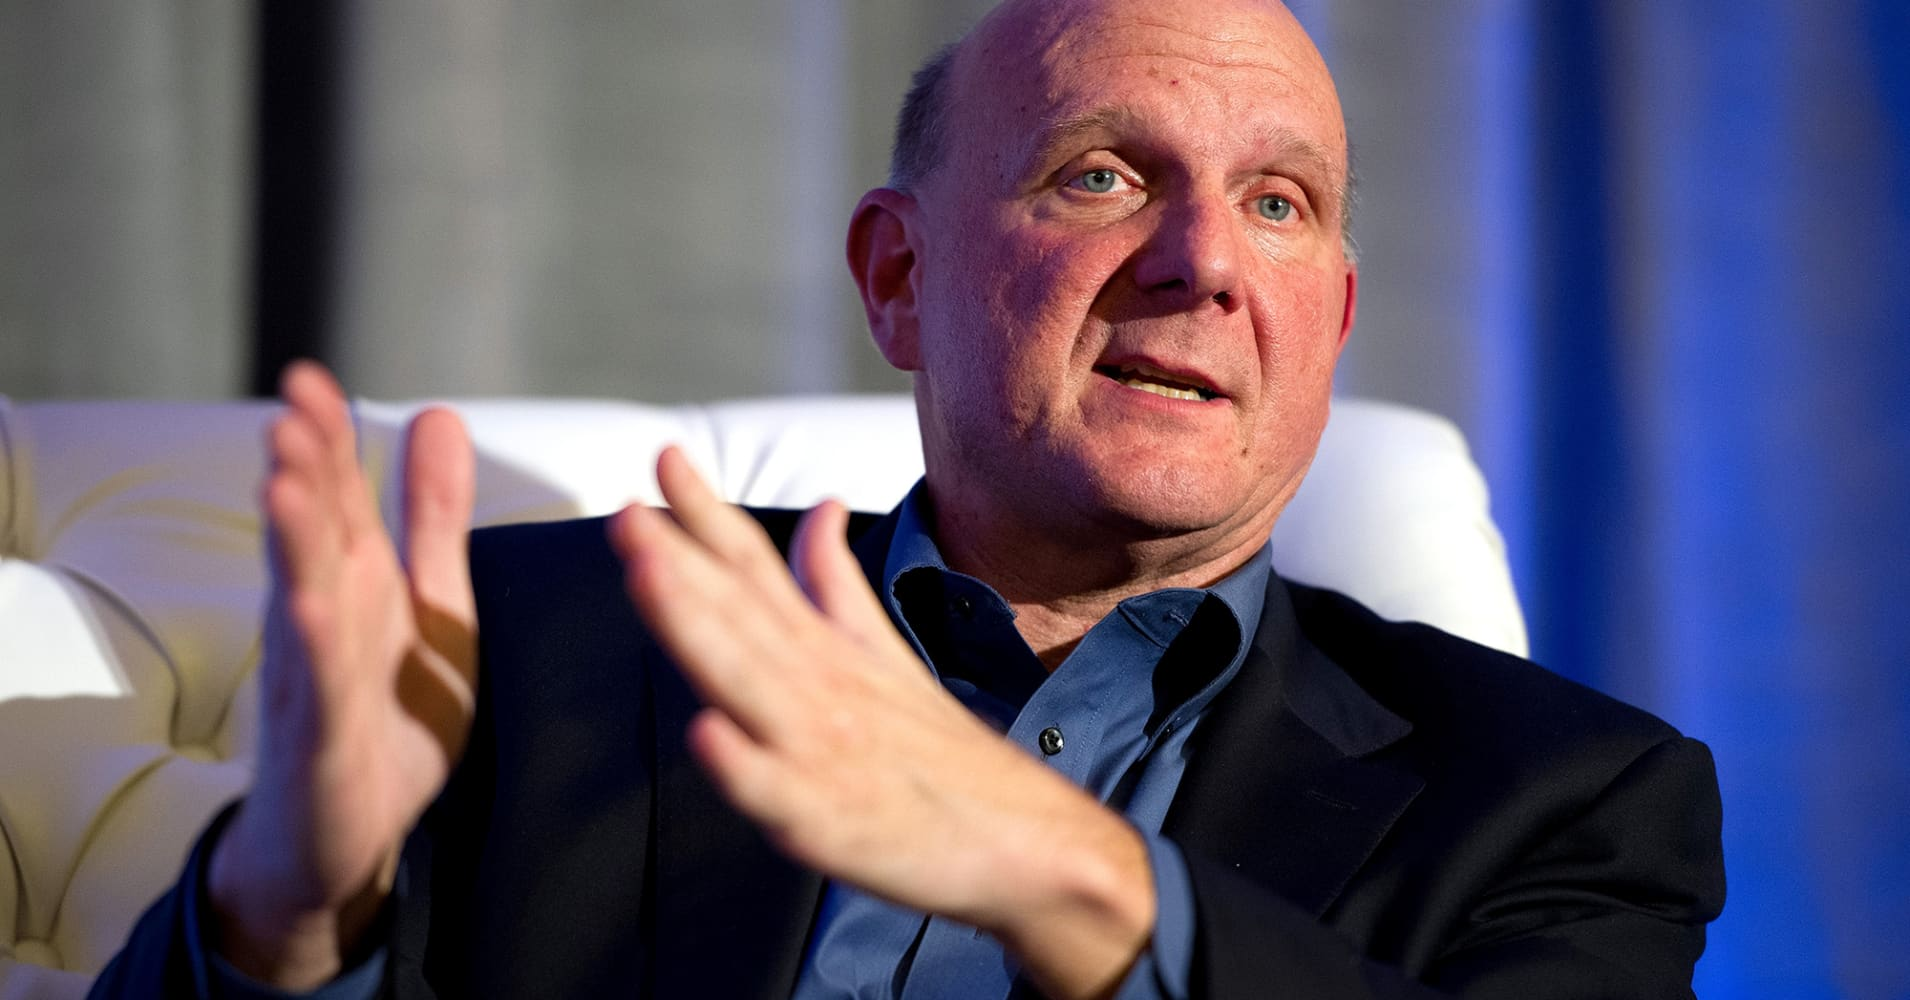 Tech Revolt Over Trump's Immigration Ban is Off the Mark, Ex-Microsoft CEO Steve Ballmer Says